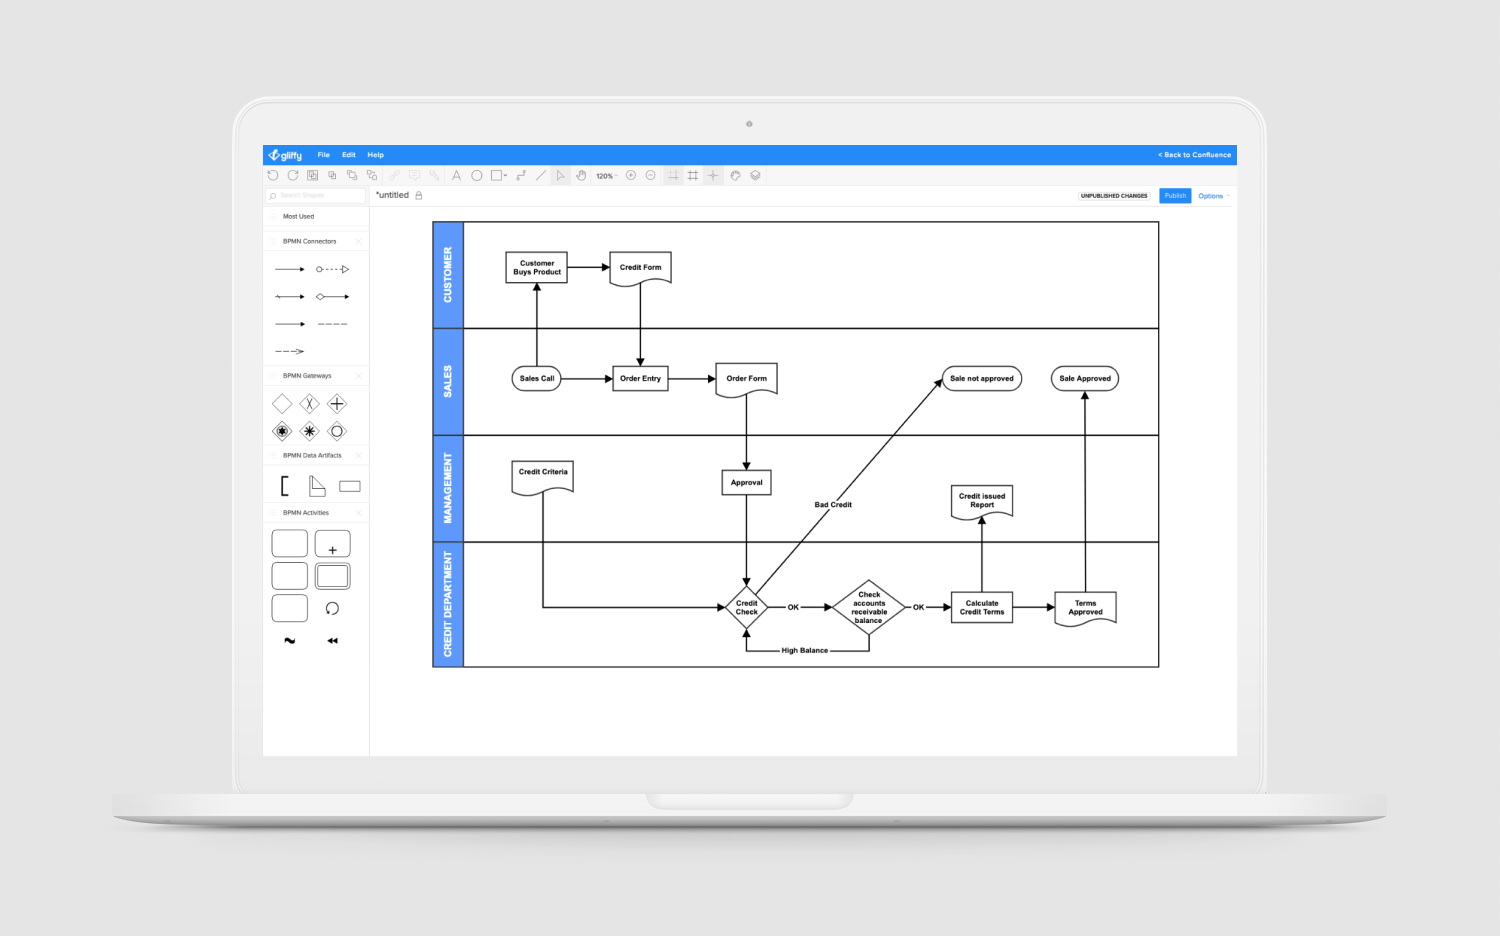 Flowchart Software for Mac - Gliffy interface